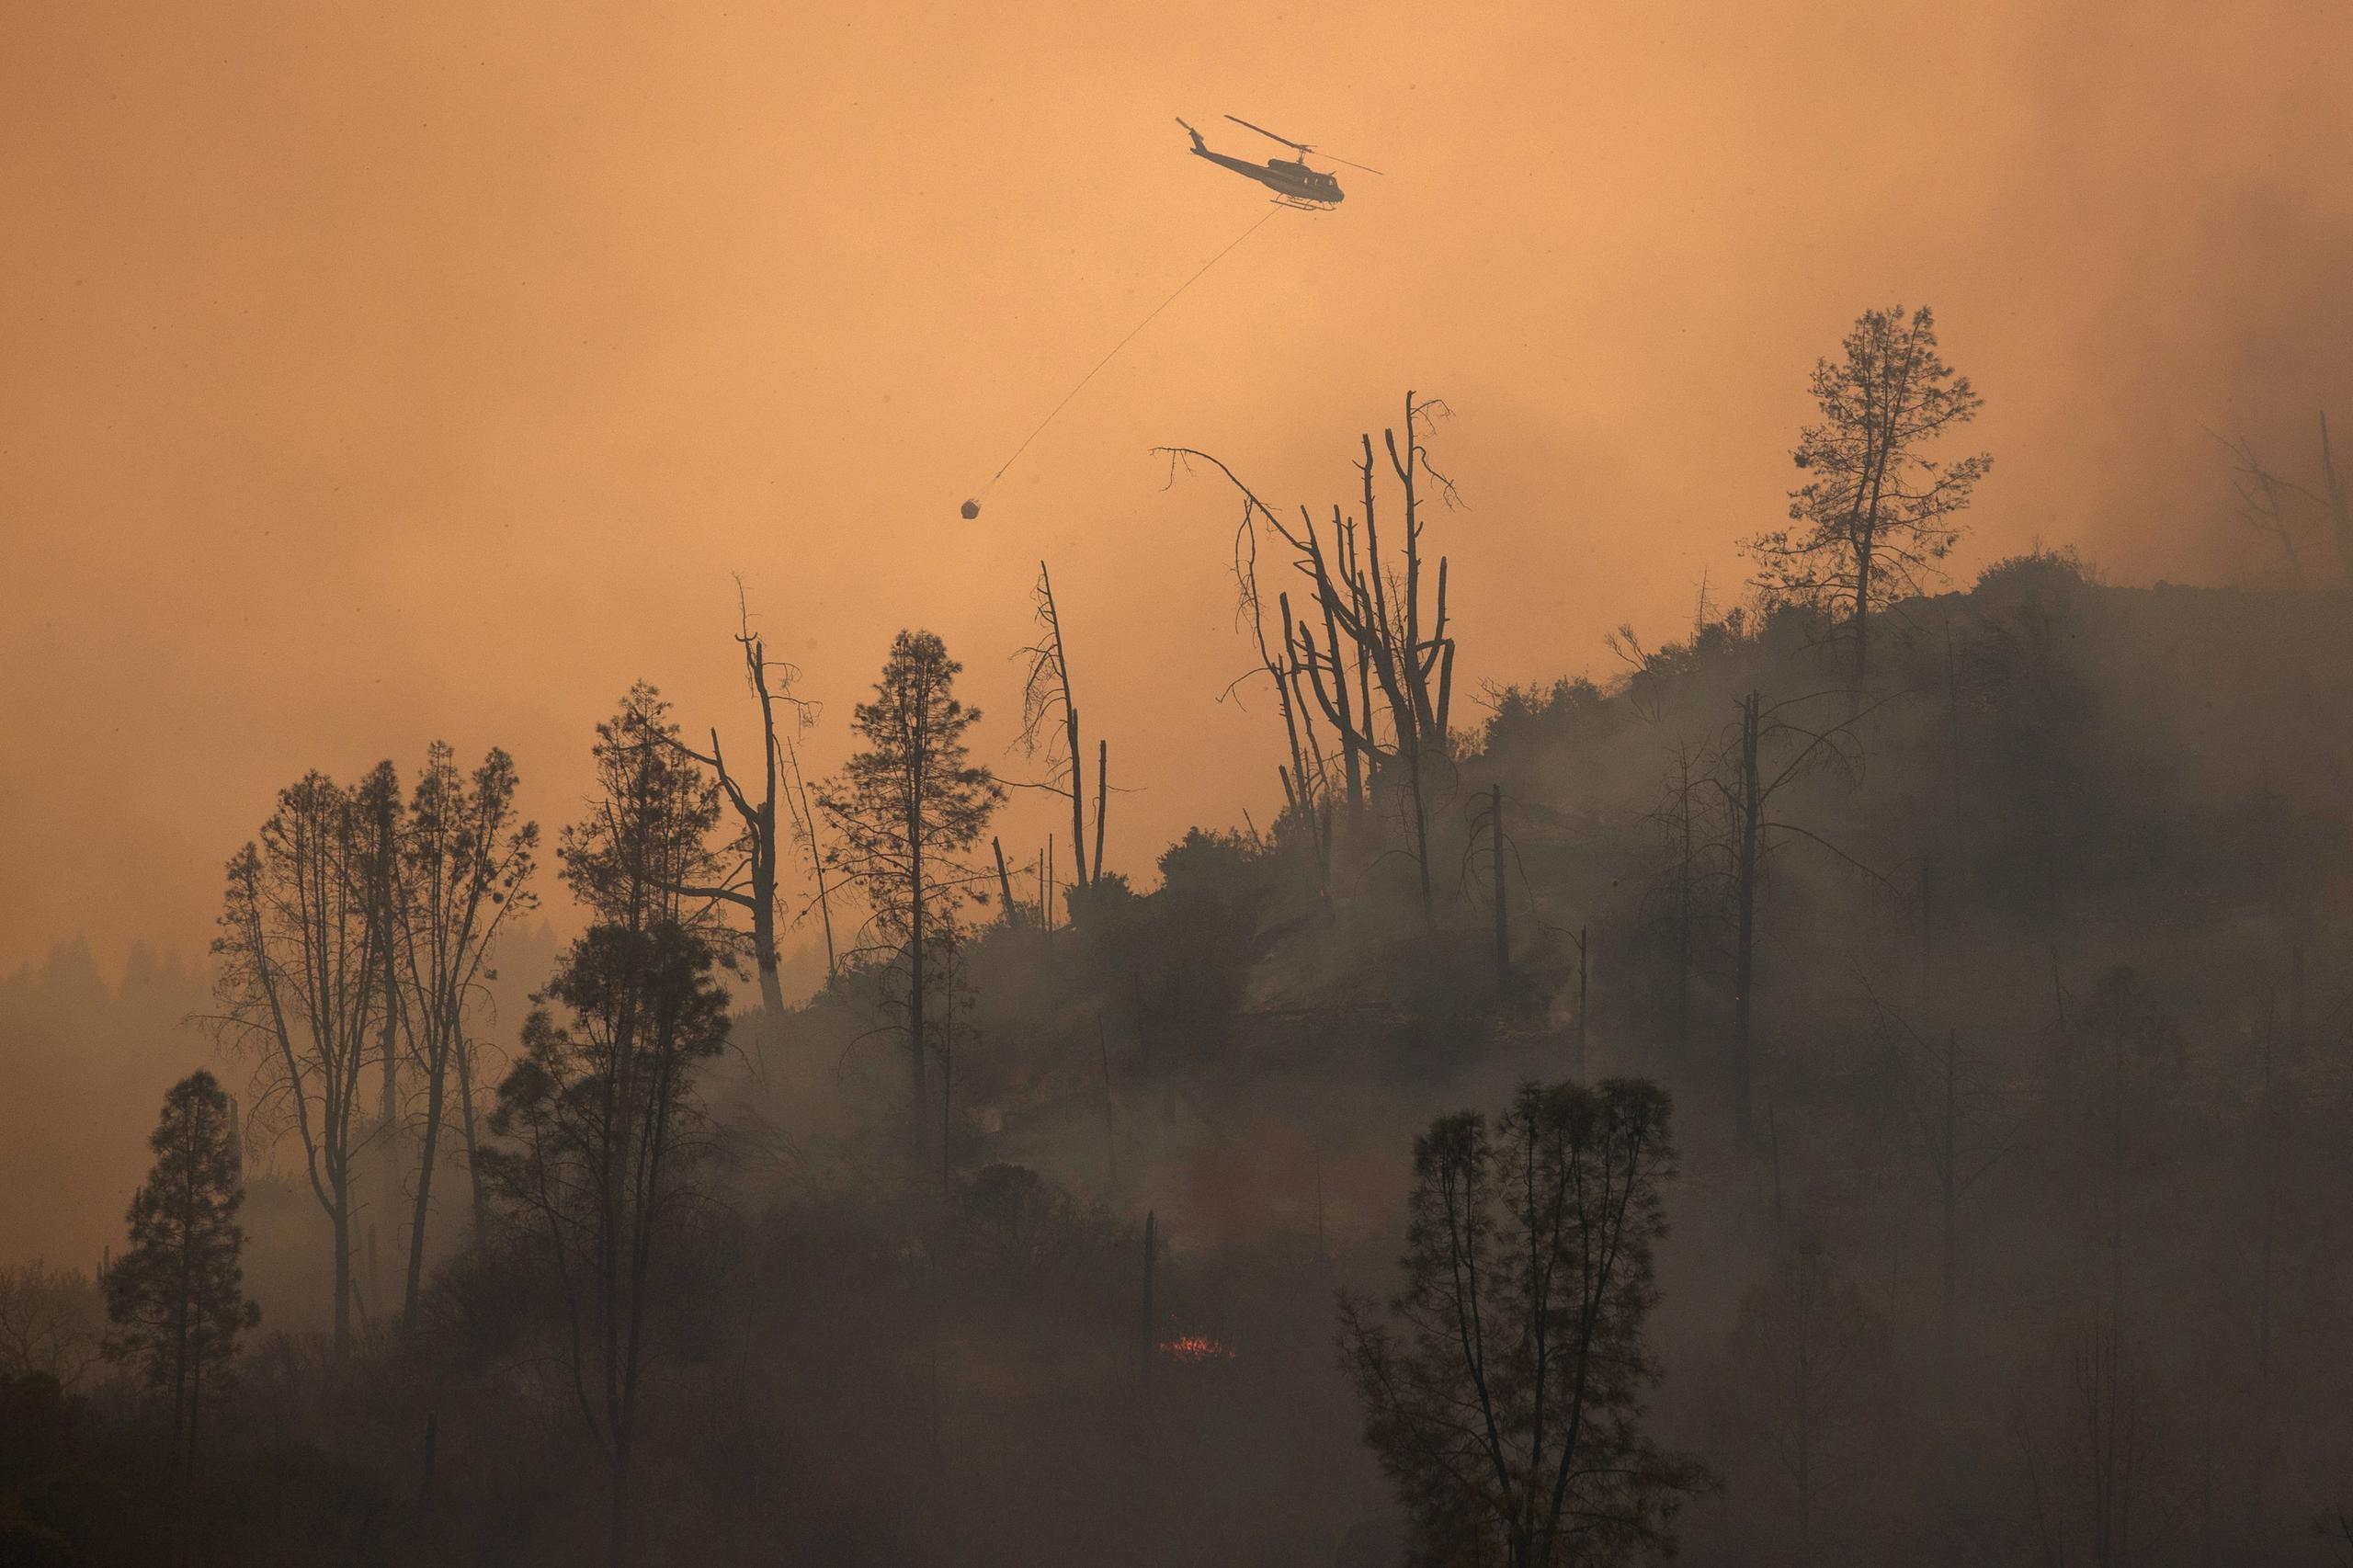 FILE PHOTO: A helicopter and crew releases water to extinguish a section of the LNU Lightning Complex Fire near Middletown, California, U.S. August 24, 2020. REUTERS/Adrees Latif